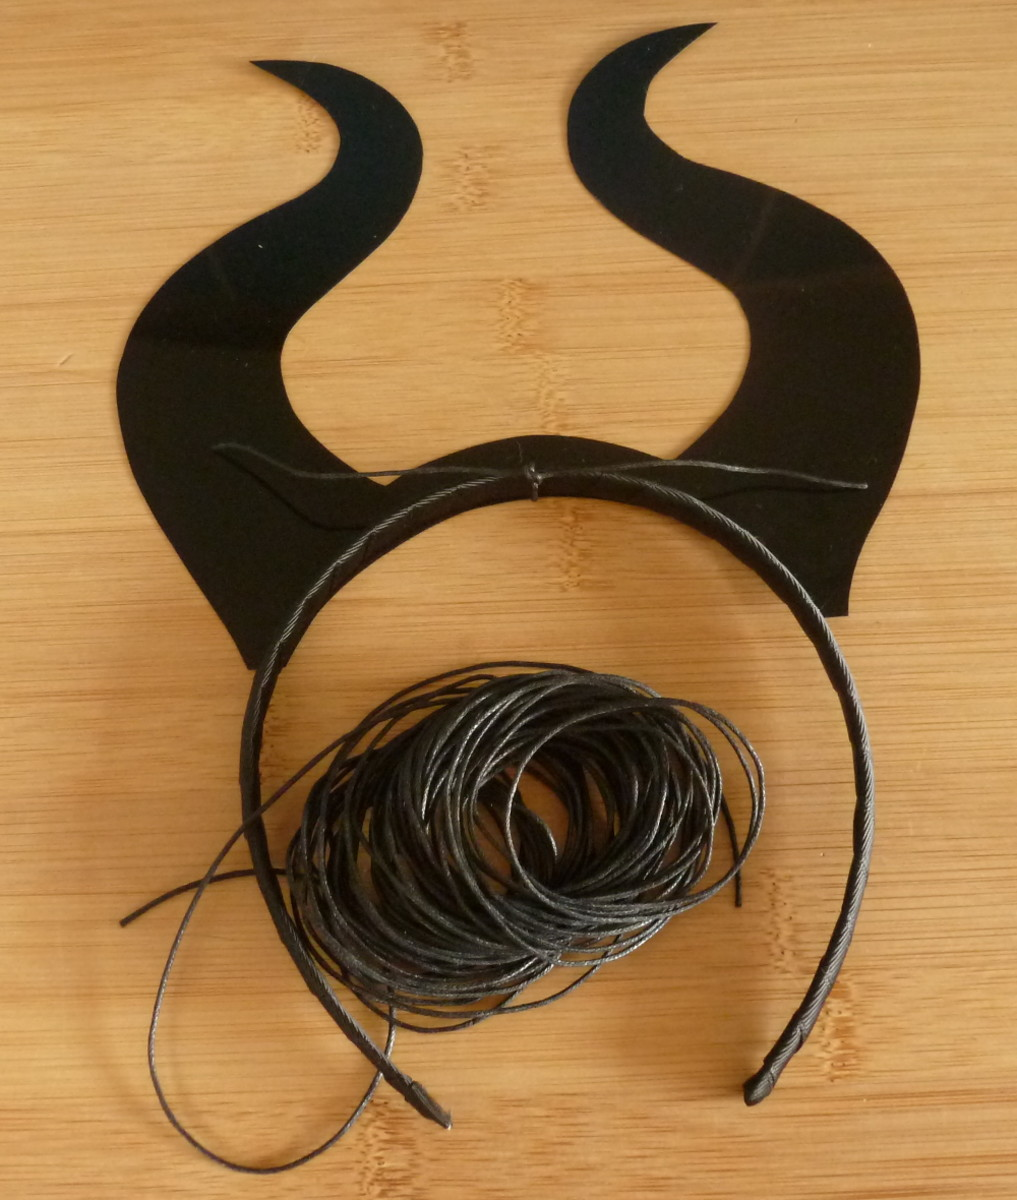 Adding black cord to tie the DIY headband design together